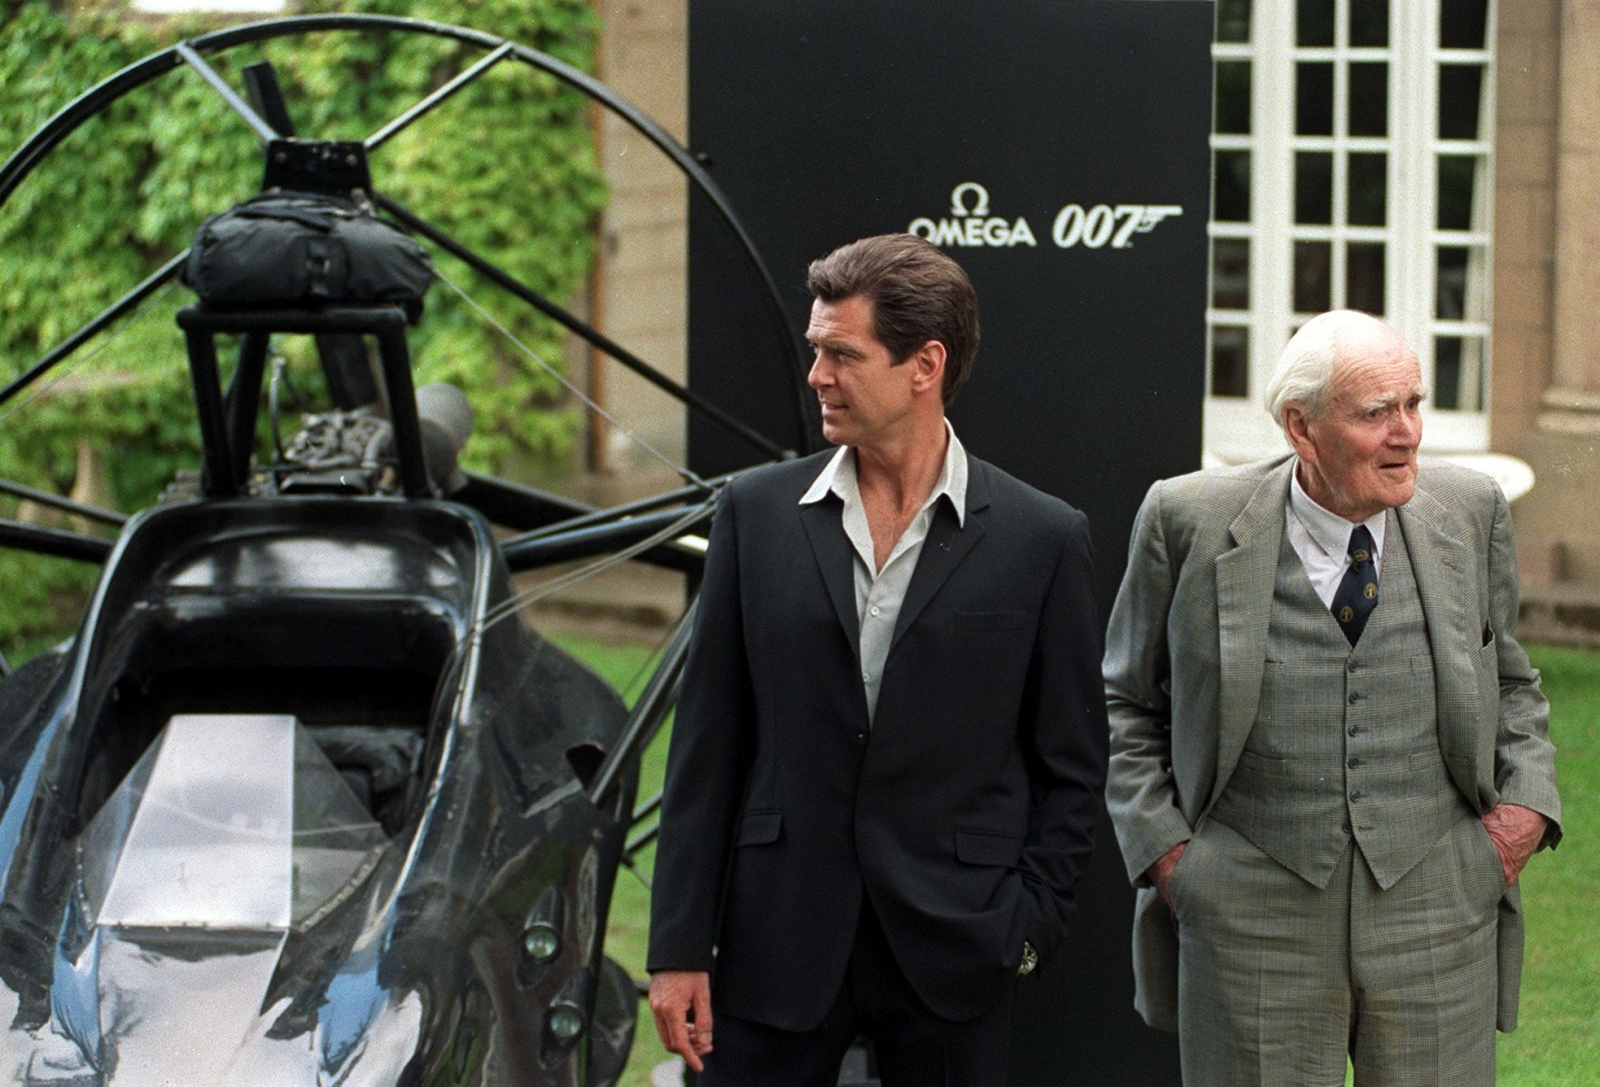 James Bond actor Pierce Brosnan and Desmond Llewelyn, who played Q in 17 of the Bond movies. (Getty)